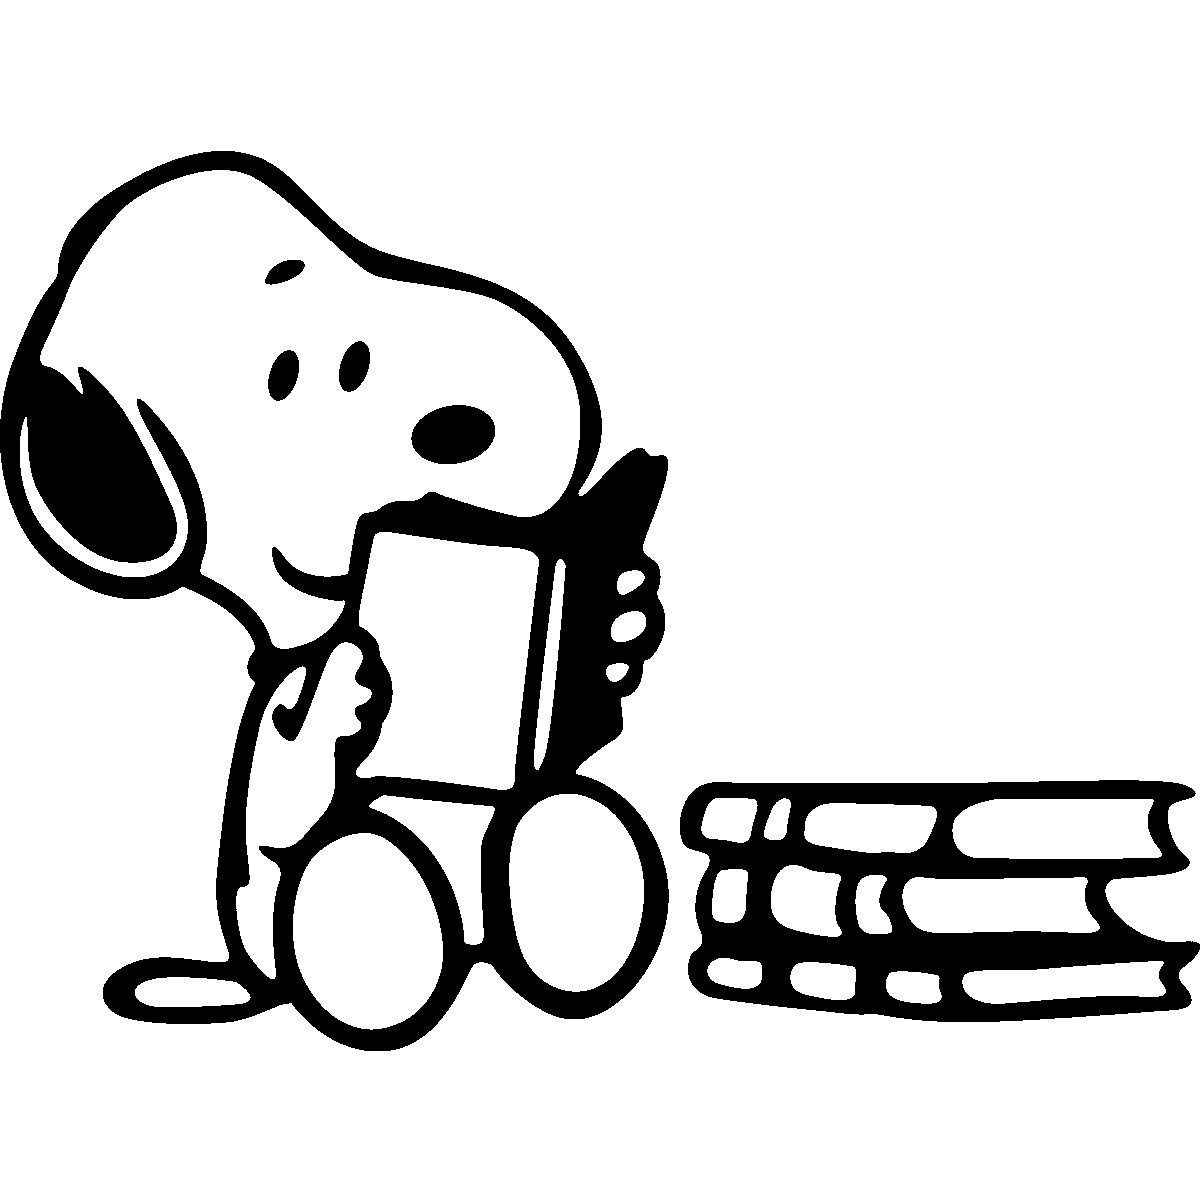 Pc and mac laptop skins skin snoopy reading a book ambiance